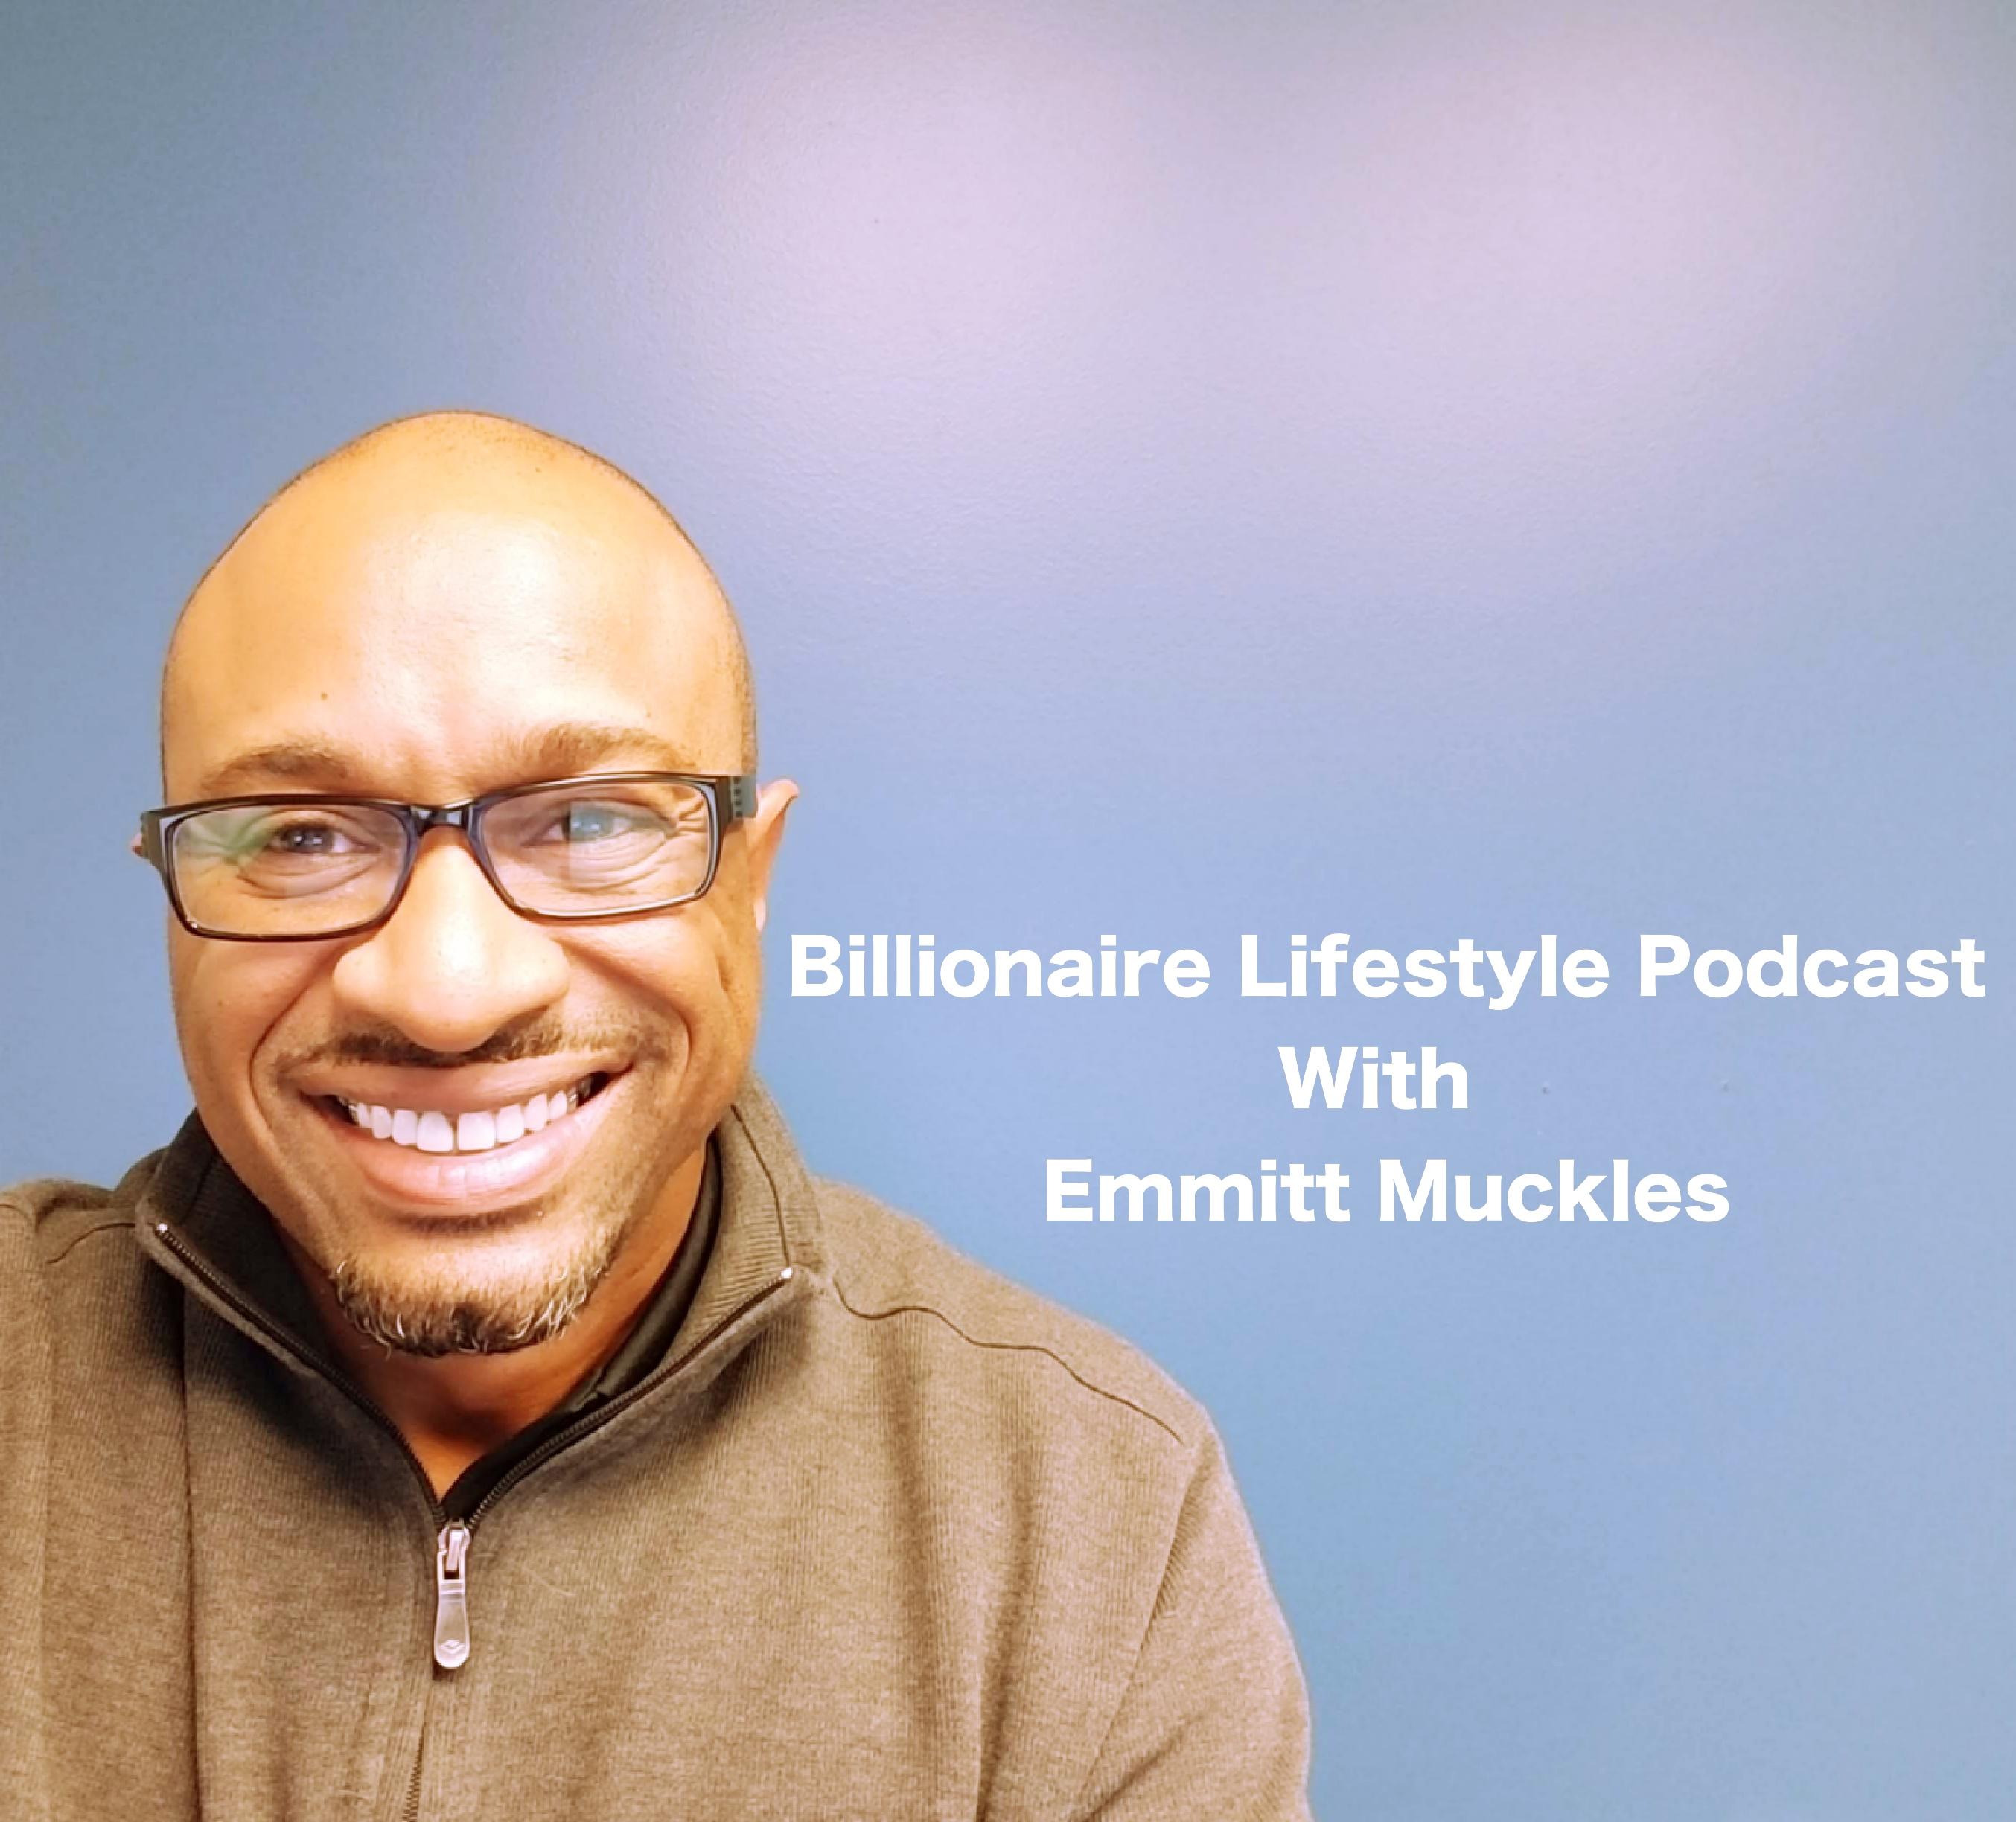 Billionaire lifestyle with Emmitt Muckles - Conversations with conscious entrepreneurs, solopreneurs and life changers show art